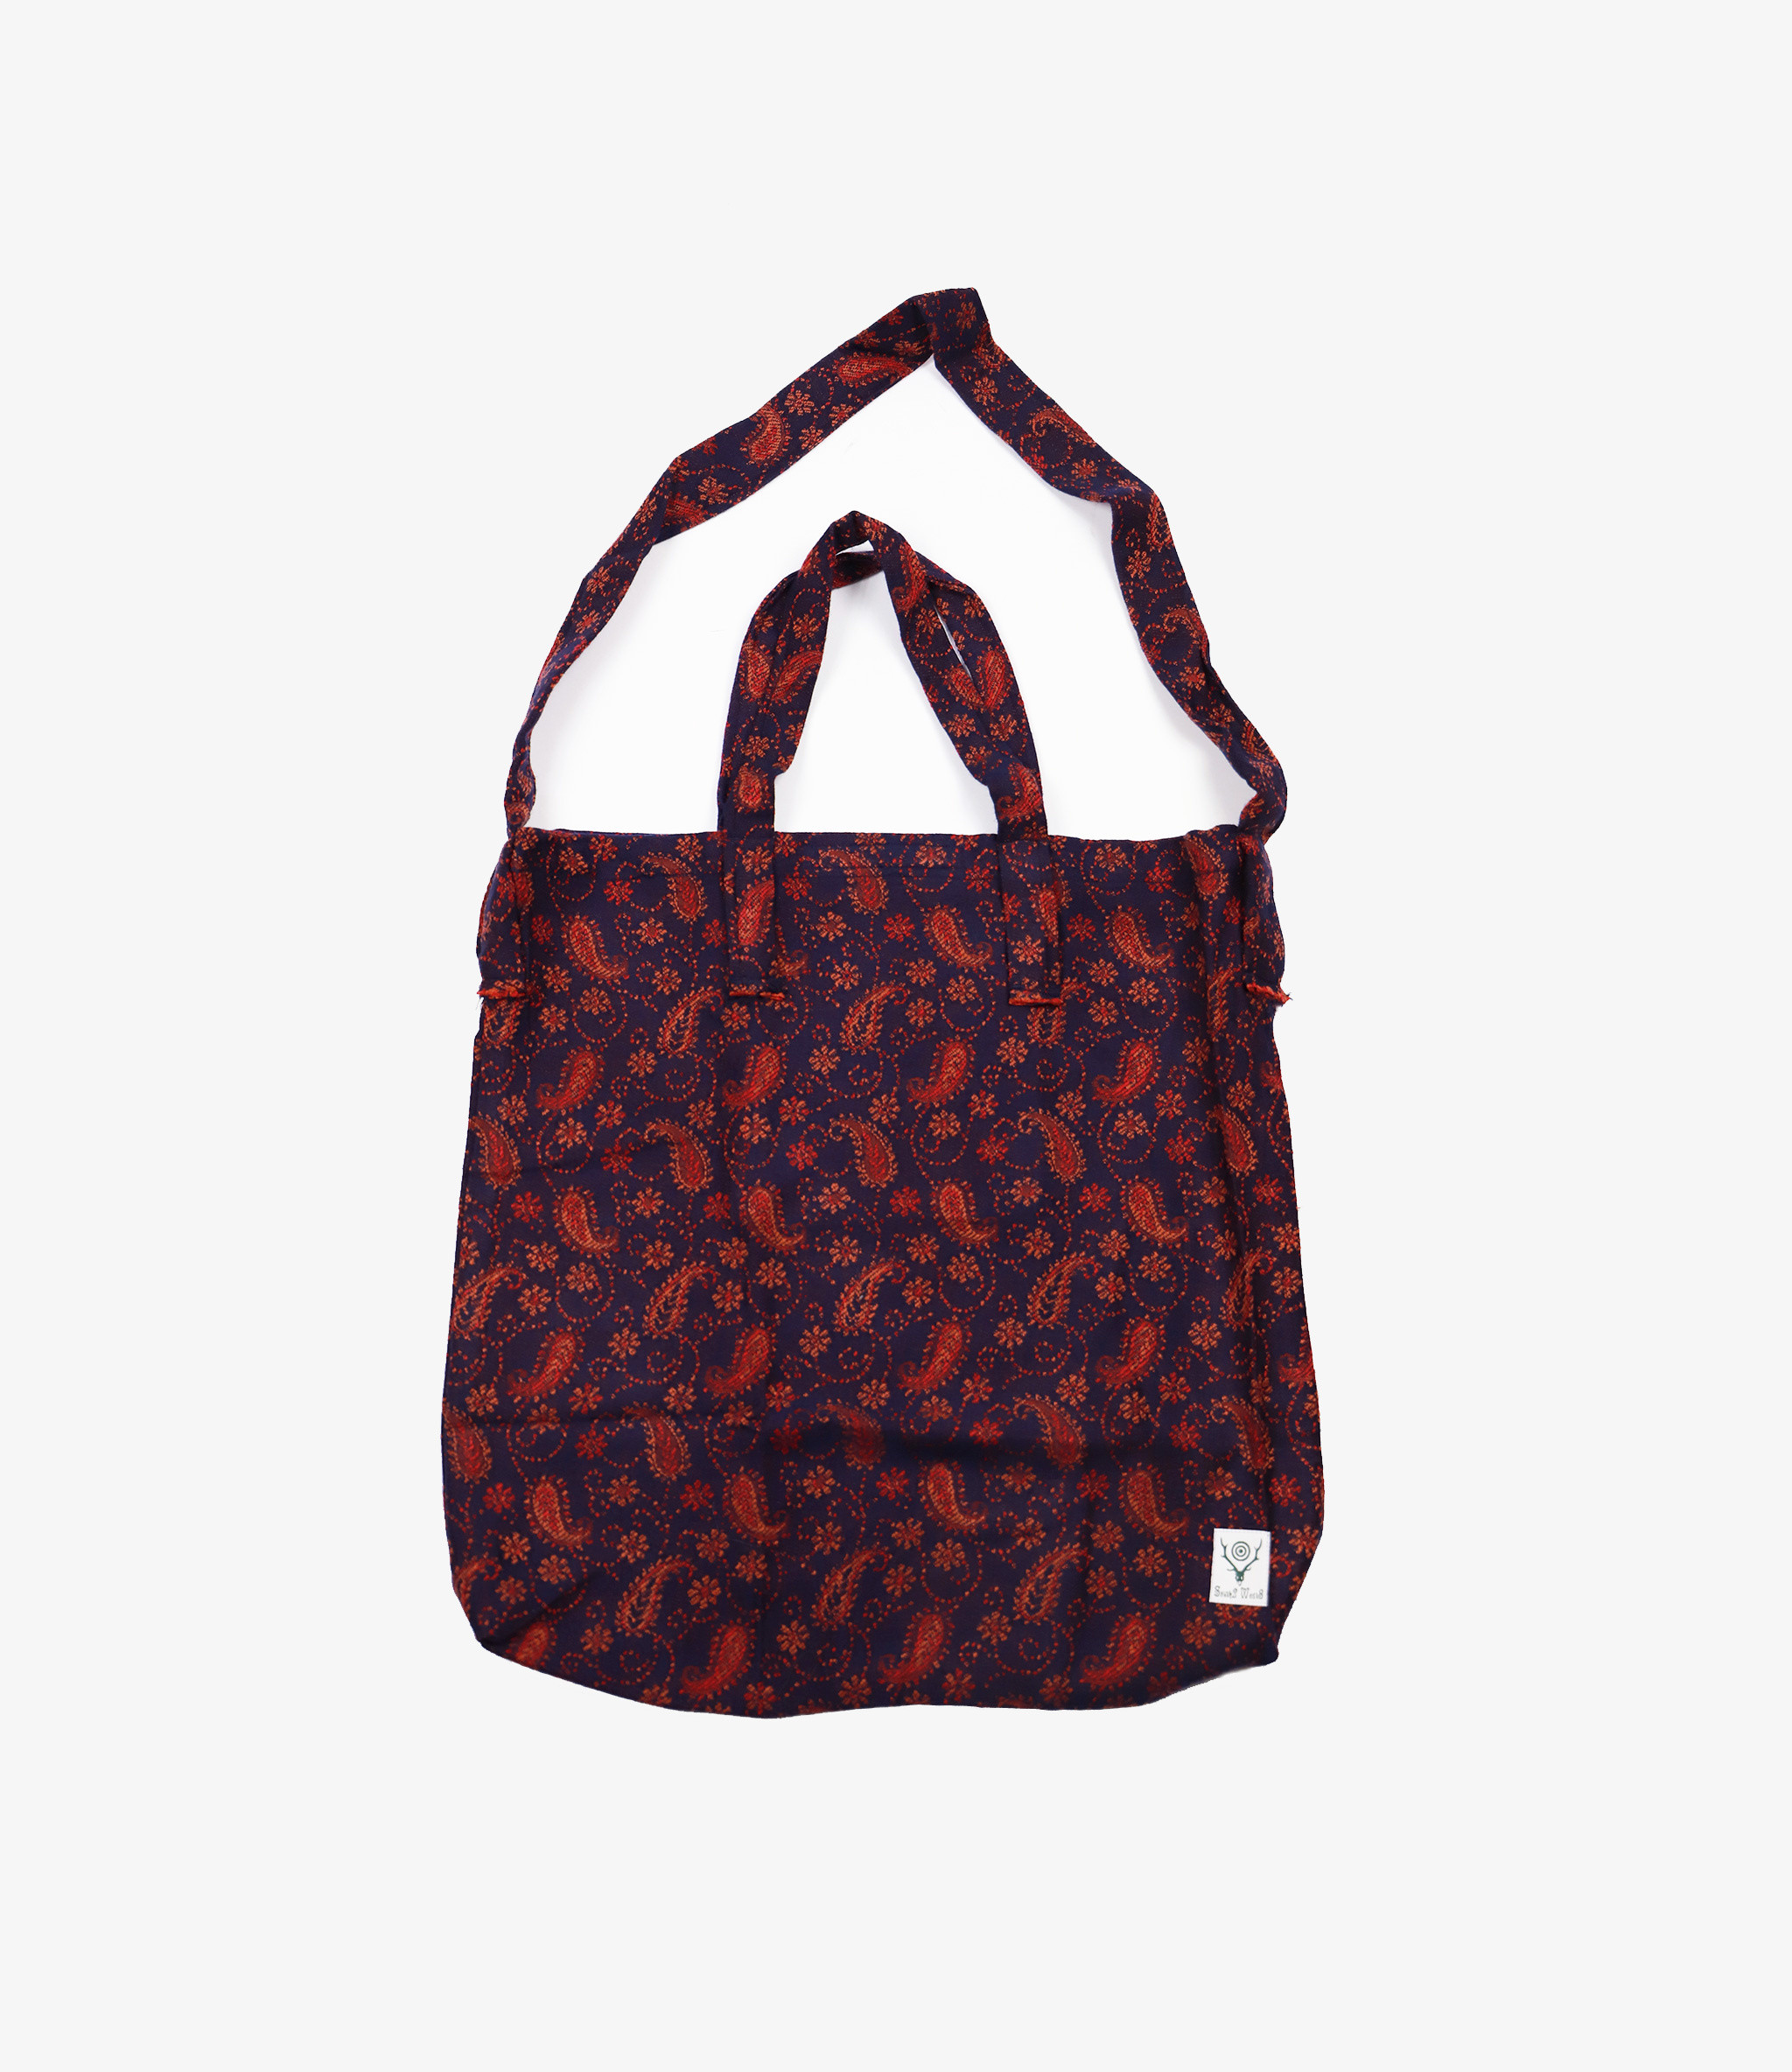 South2 West8 Grocery Bag - India Jq - Paisley